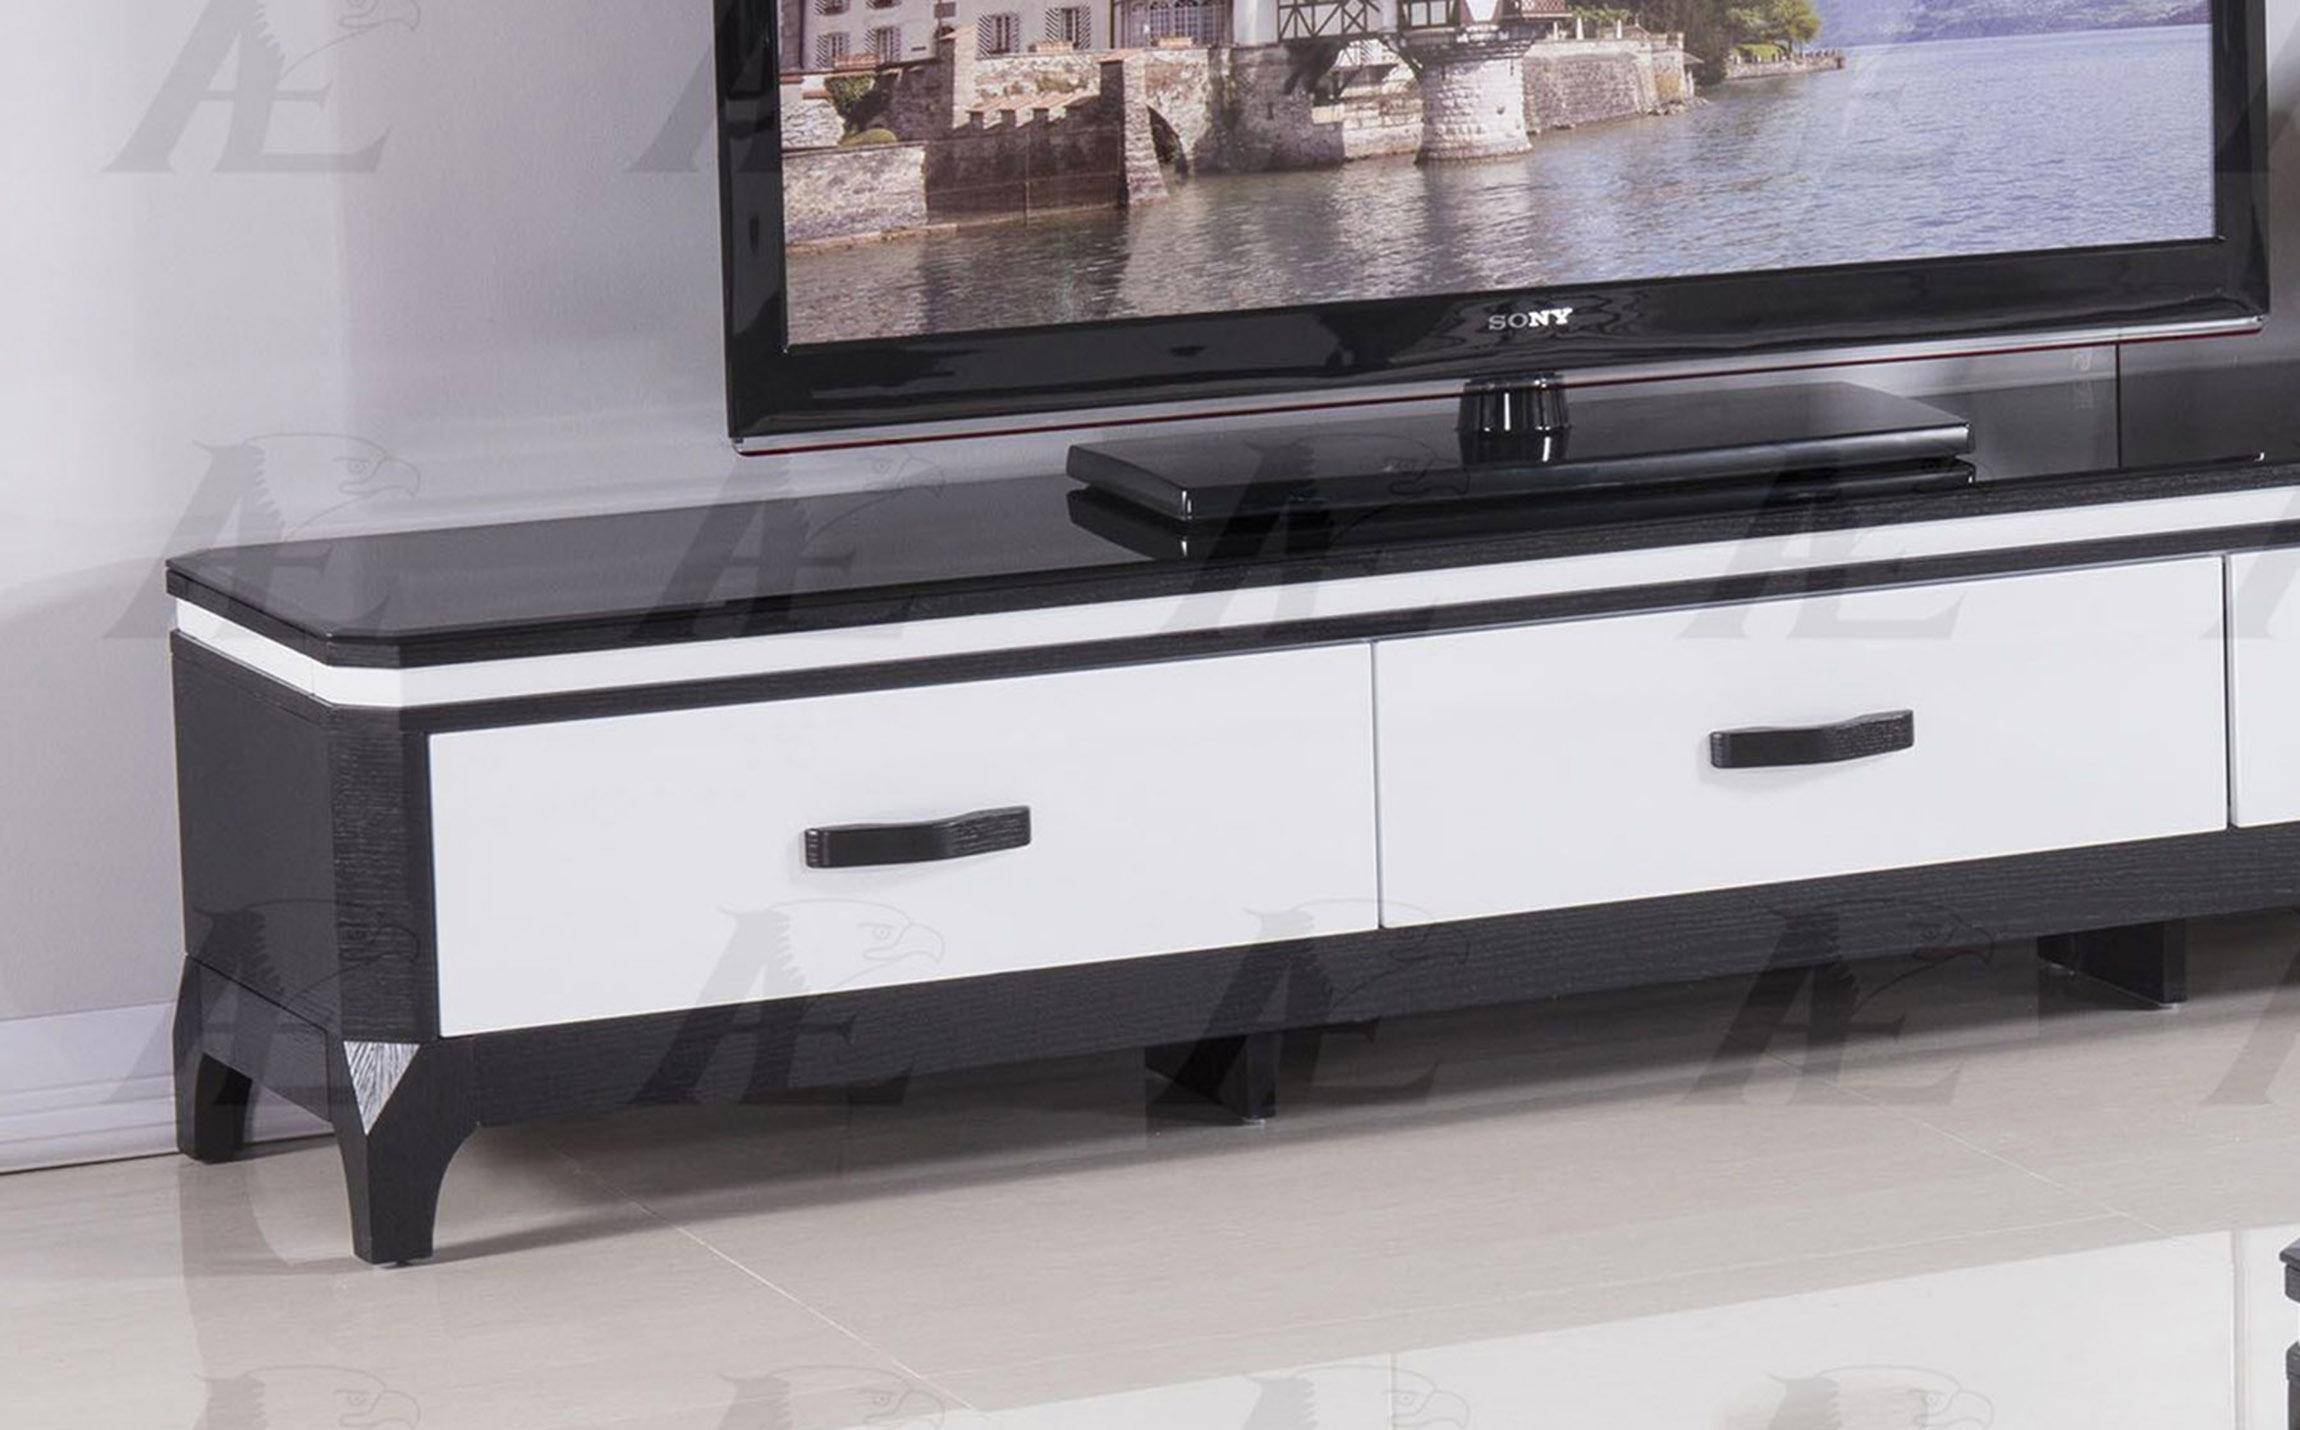 new york 31046 7609f American Eagle Furniture FC-C592 Black and White Tempered Glass Top TV Stand